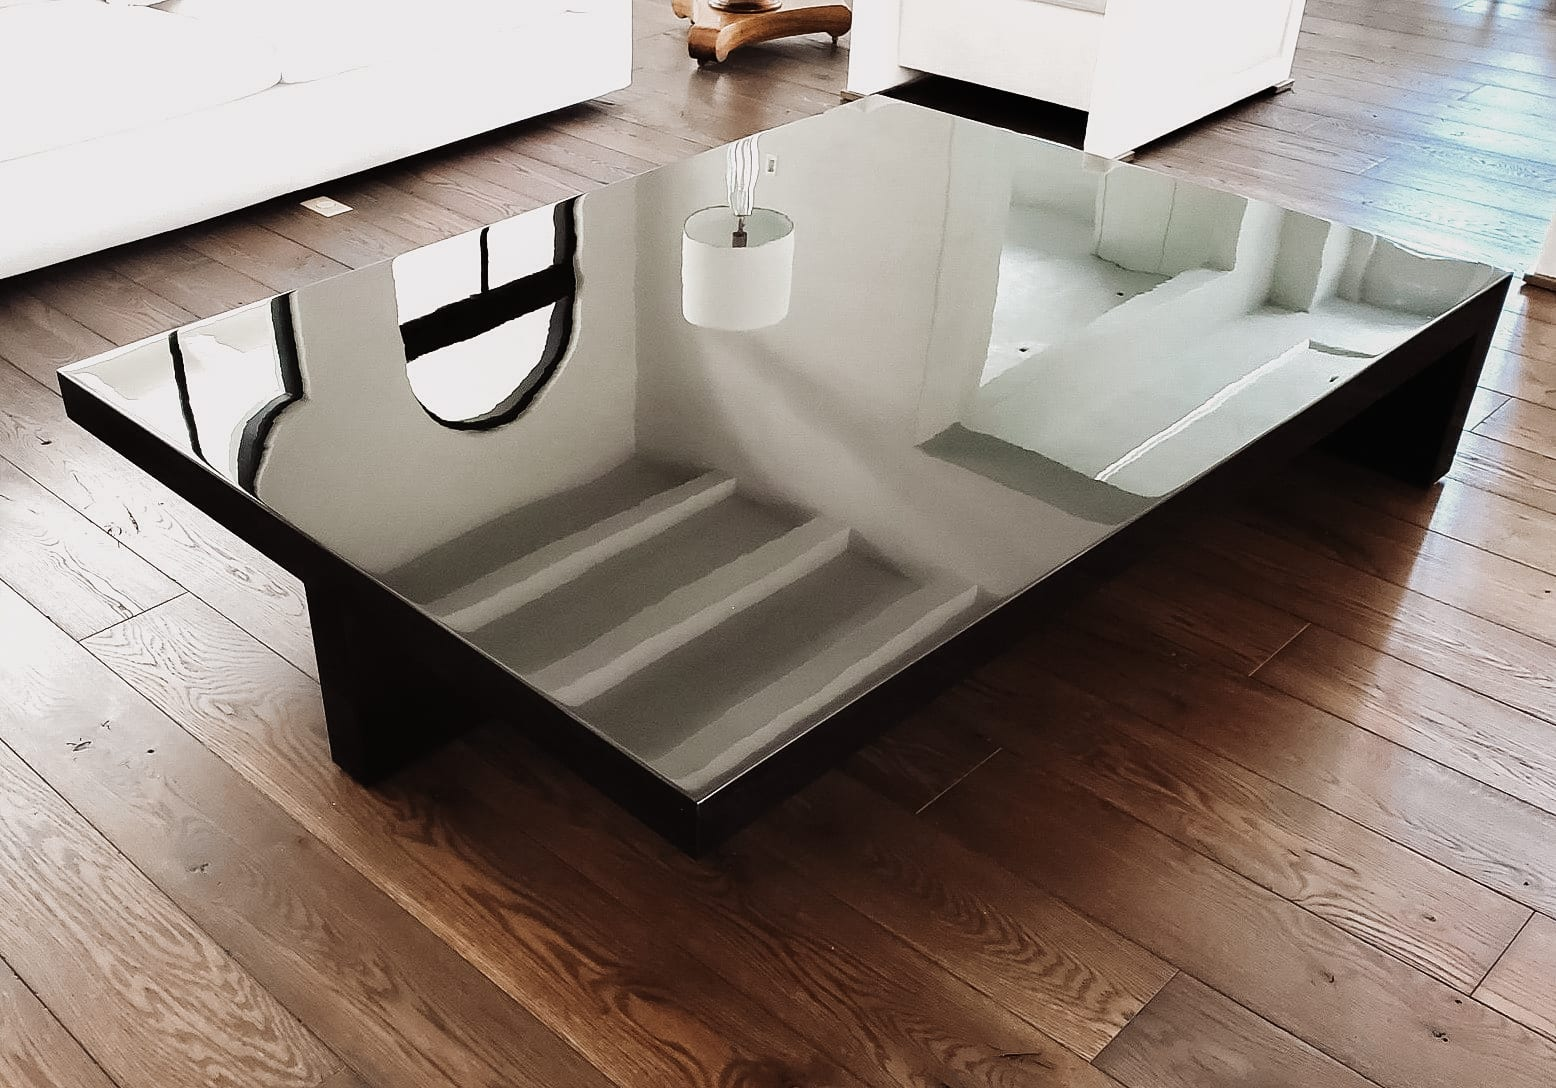 Slick and Shiny Coffee Table in Home